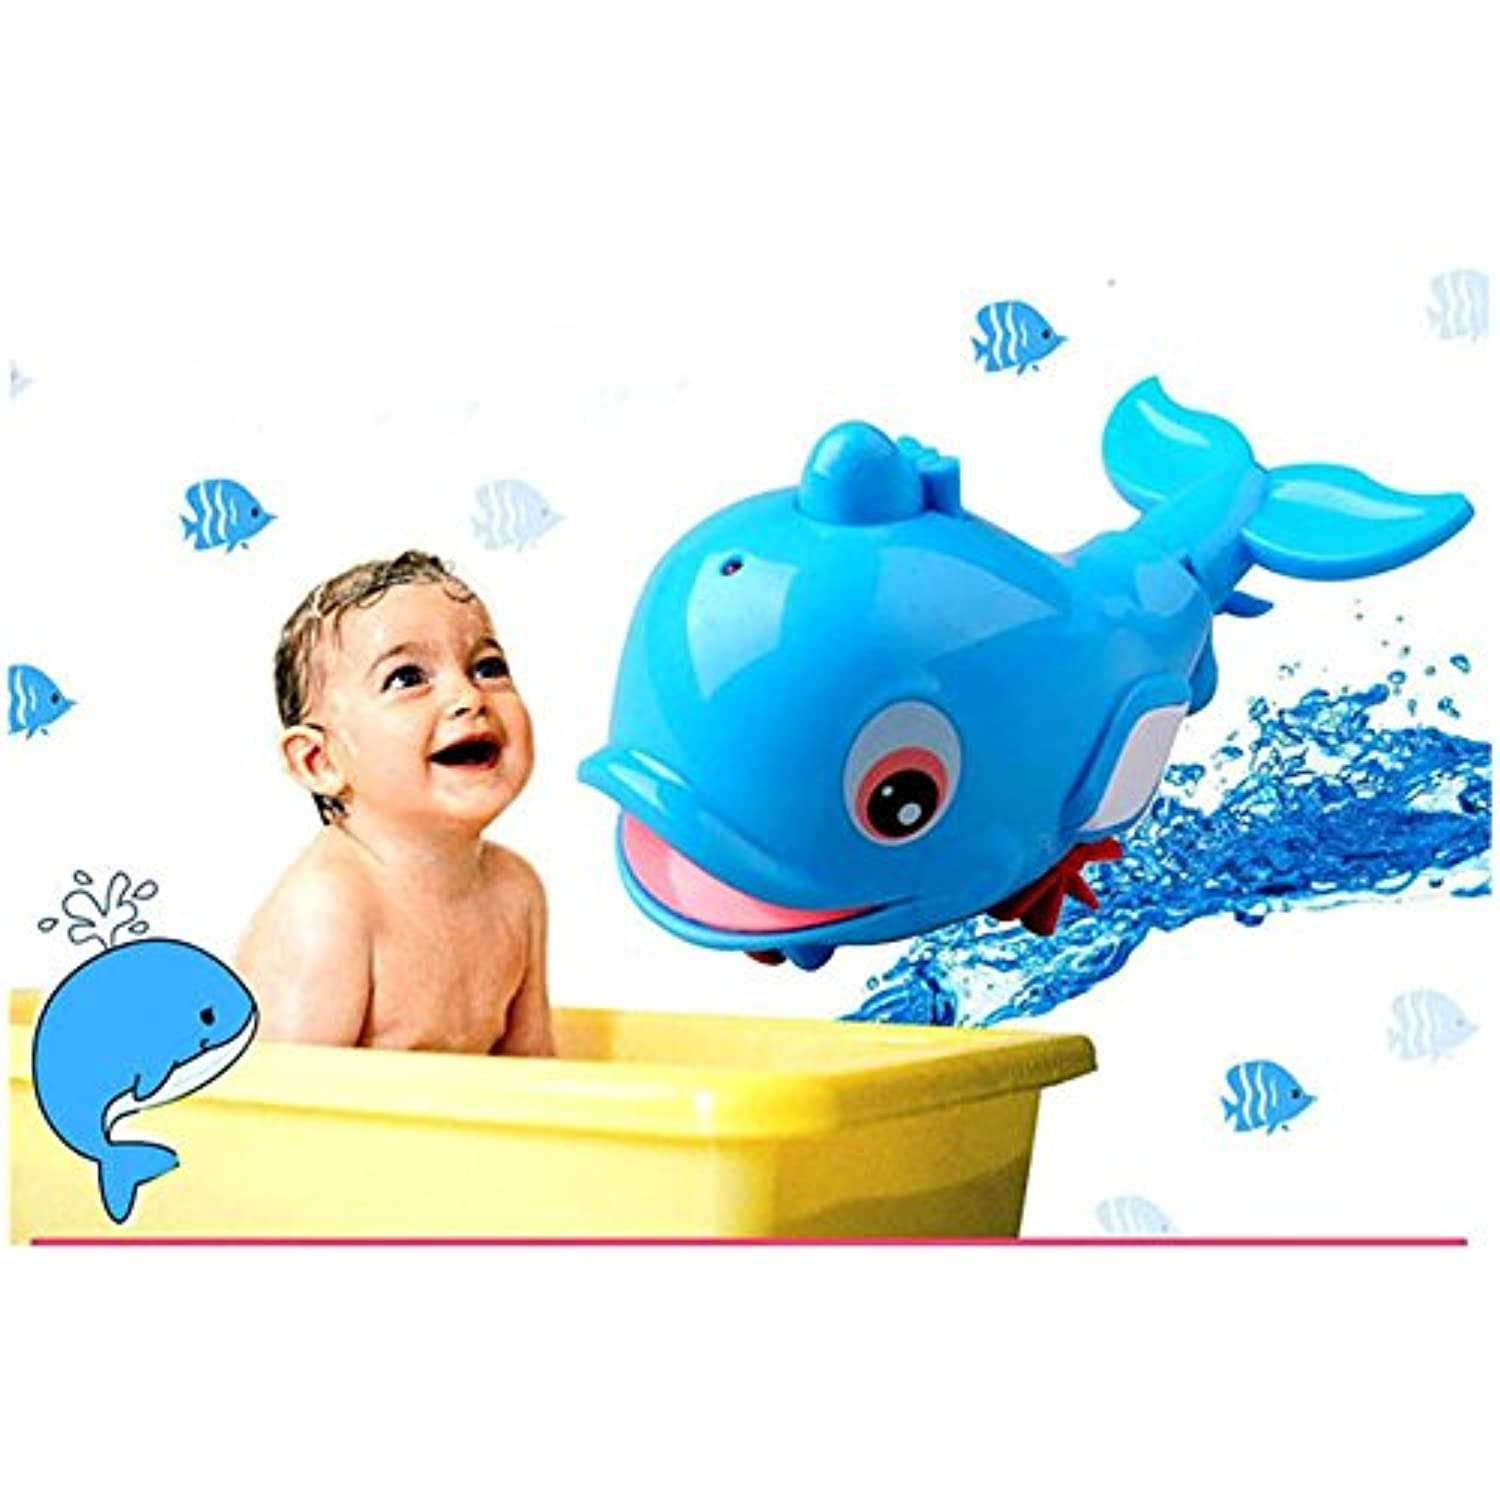 smtsmt Babies Swim Dolphin wound-upチェーンSmall Animal Bathおもちゃクラシックおもちゃ